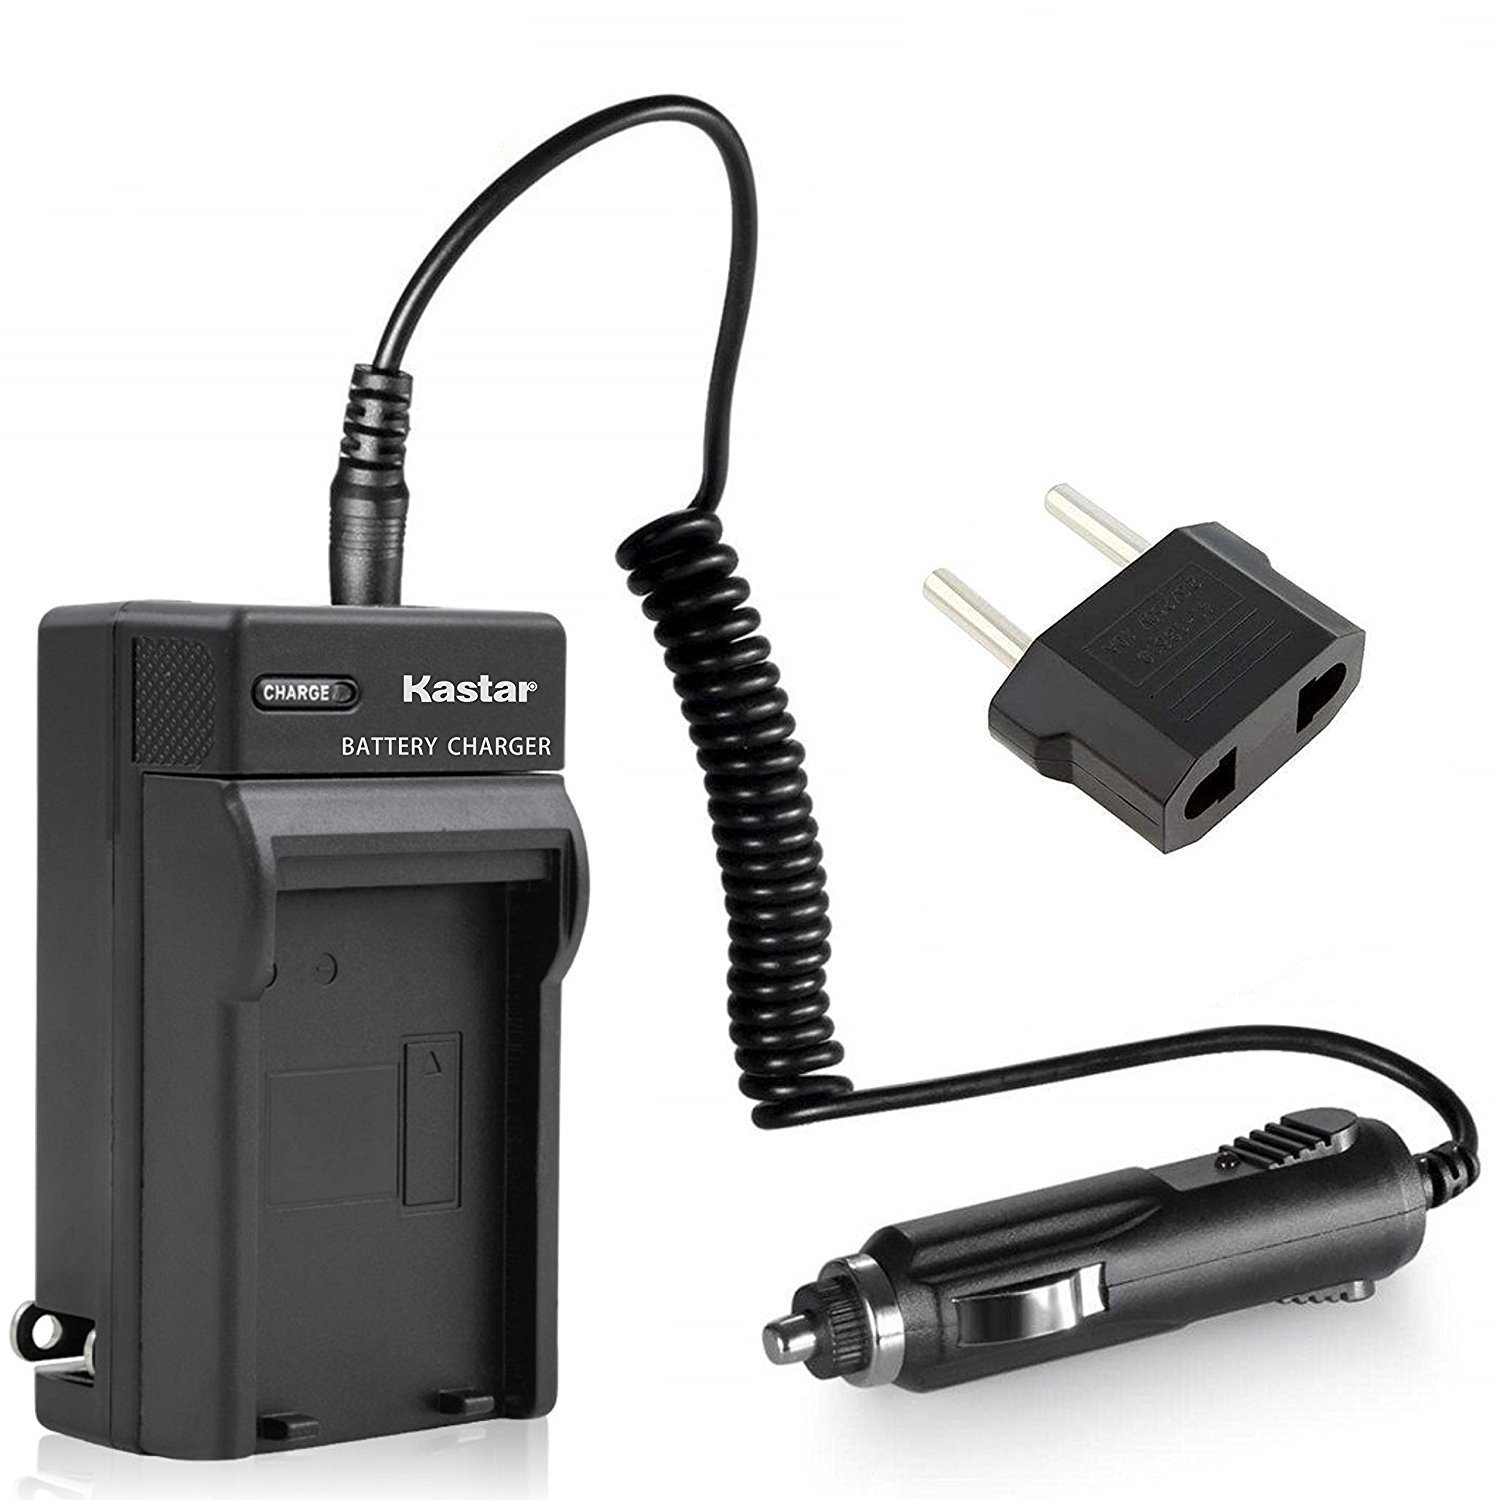 Kastar replacement camcorder charger for sony camcorder and more digital  camera battery chargers camera photo jpg